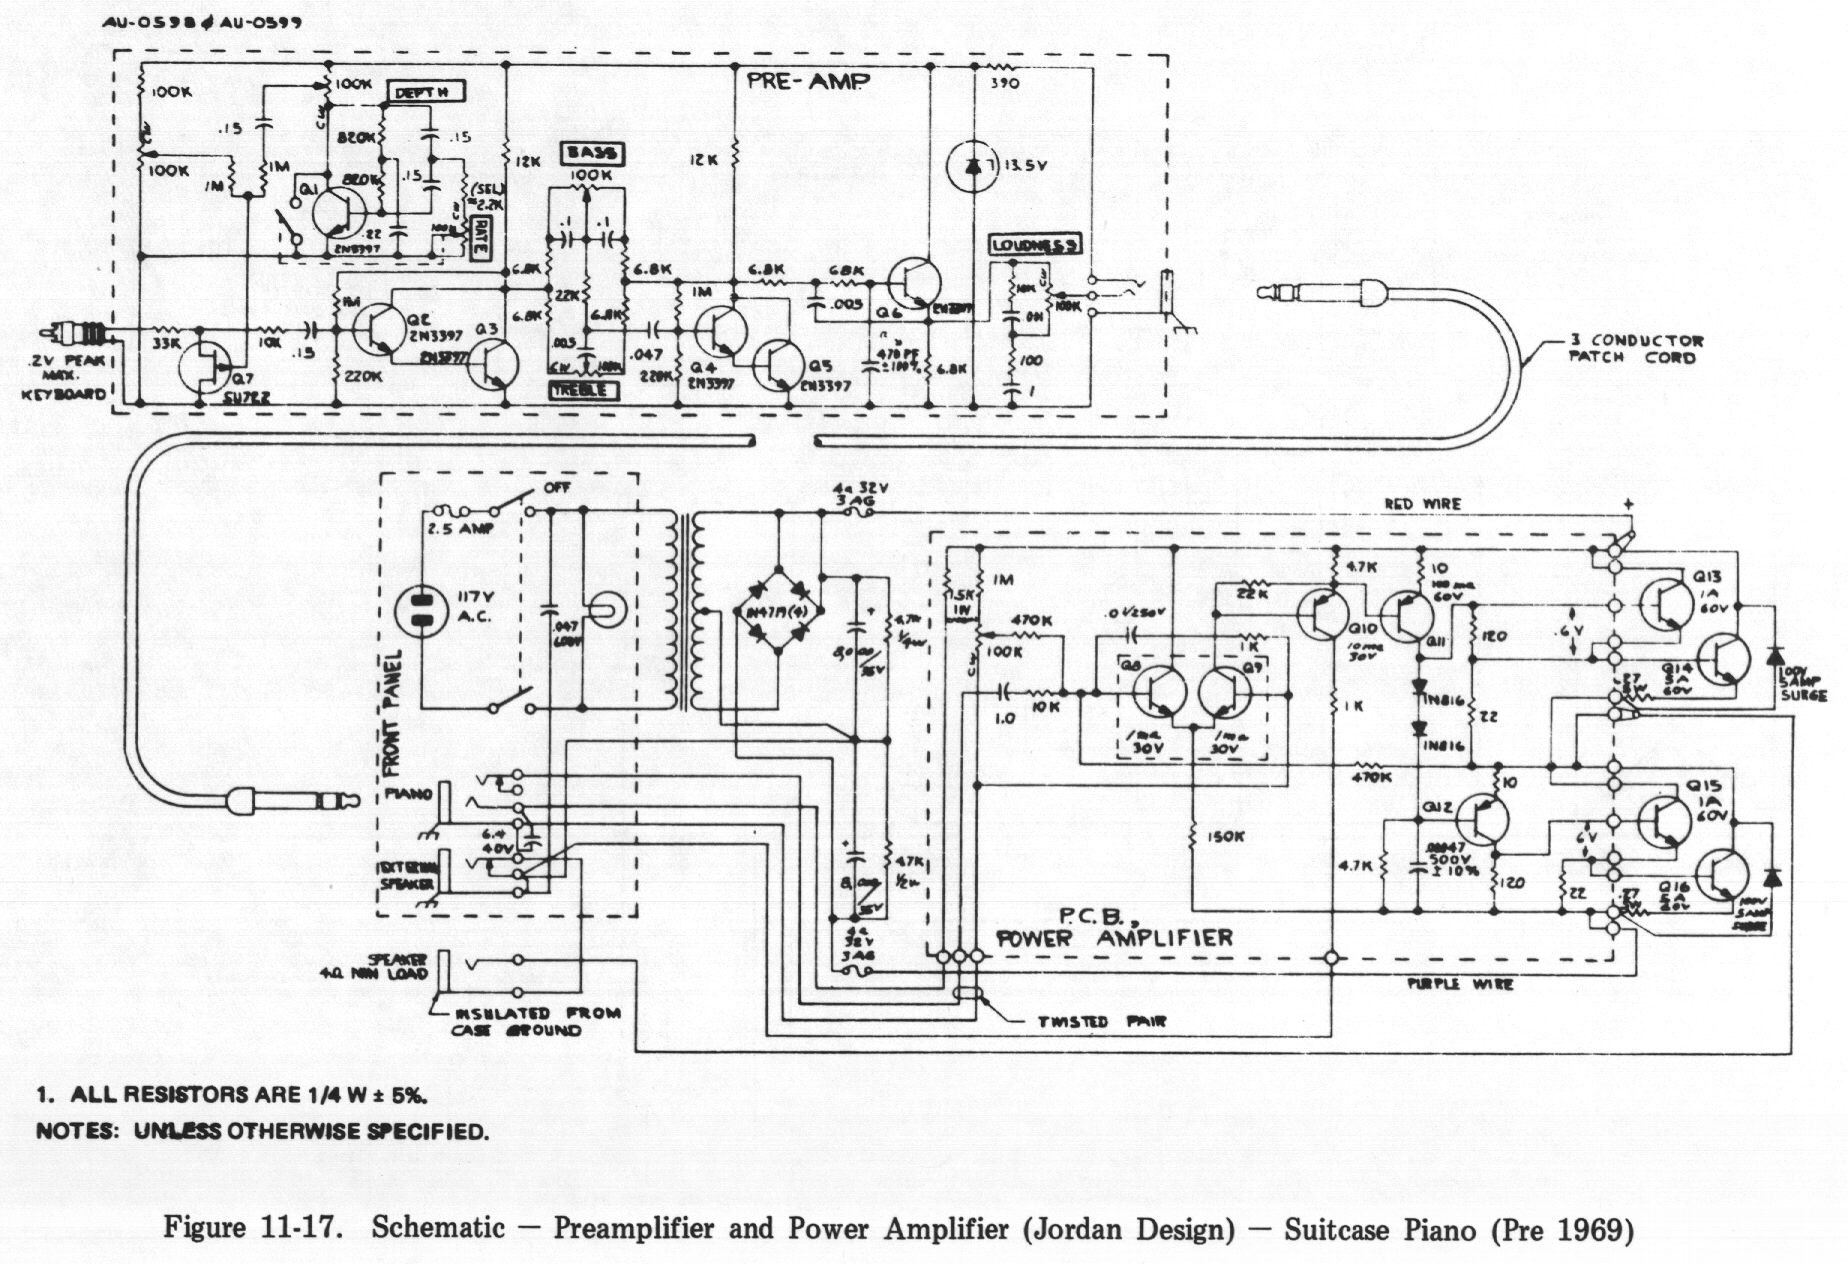 rhodes service manual table of contents 11 17 schematic preamplifier and power amplifier design suitcase piano pre 1969